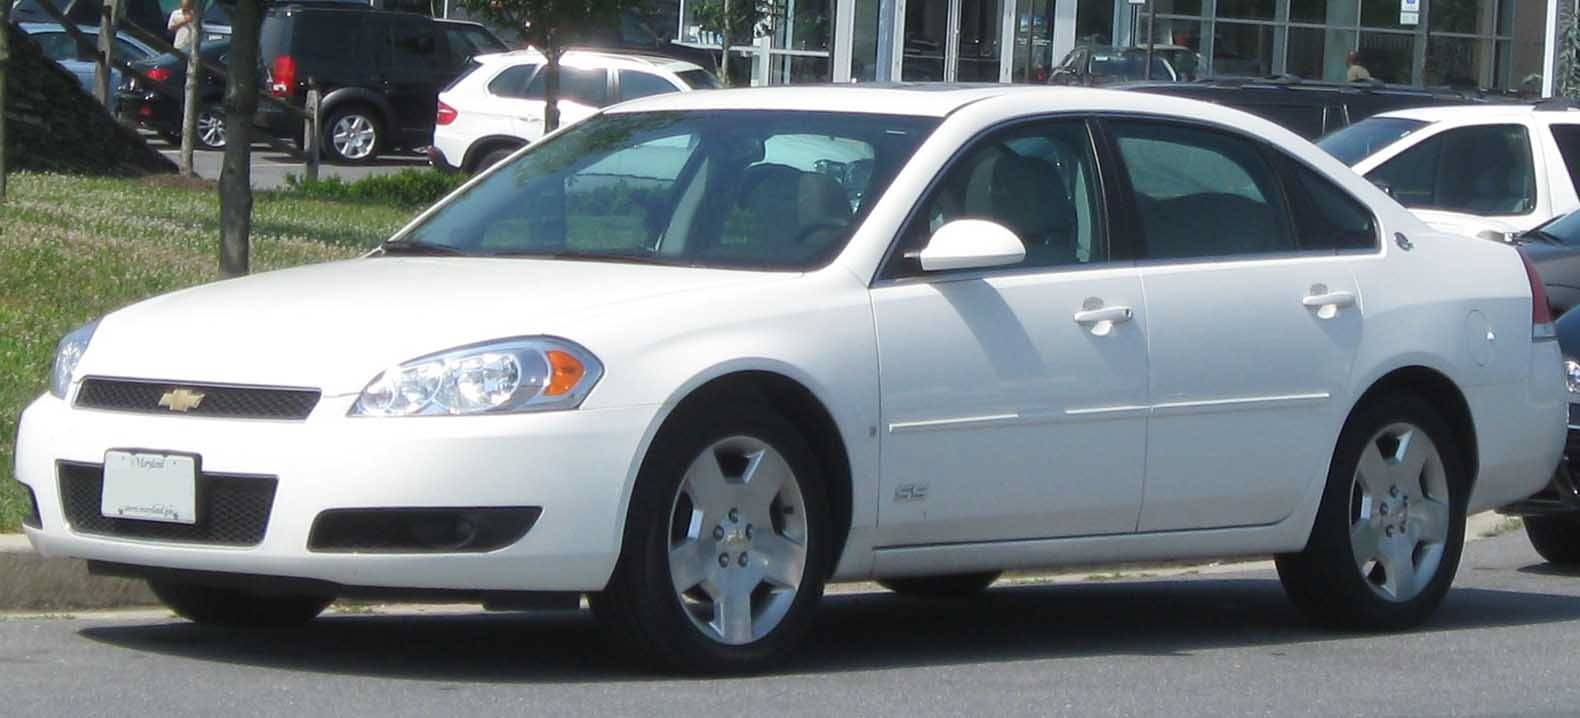 06 impala ss owners manual